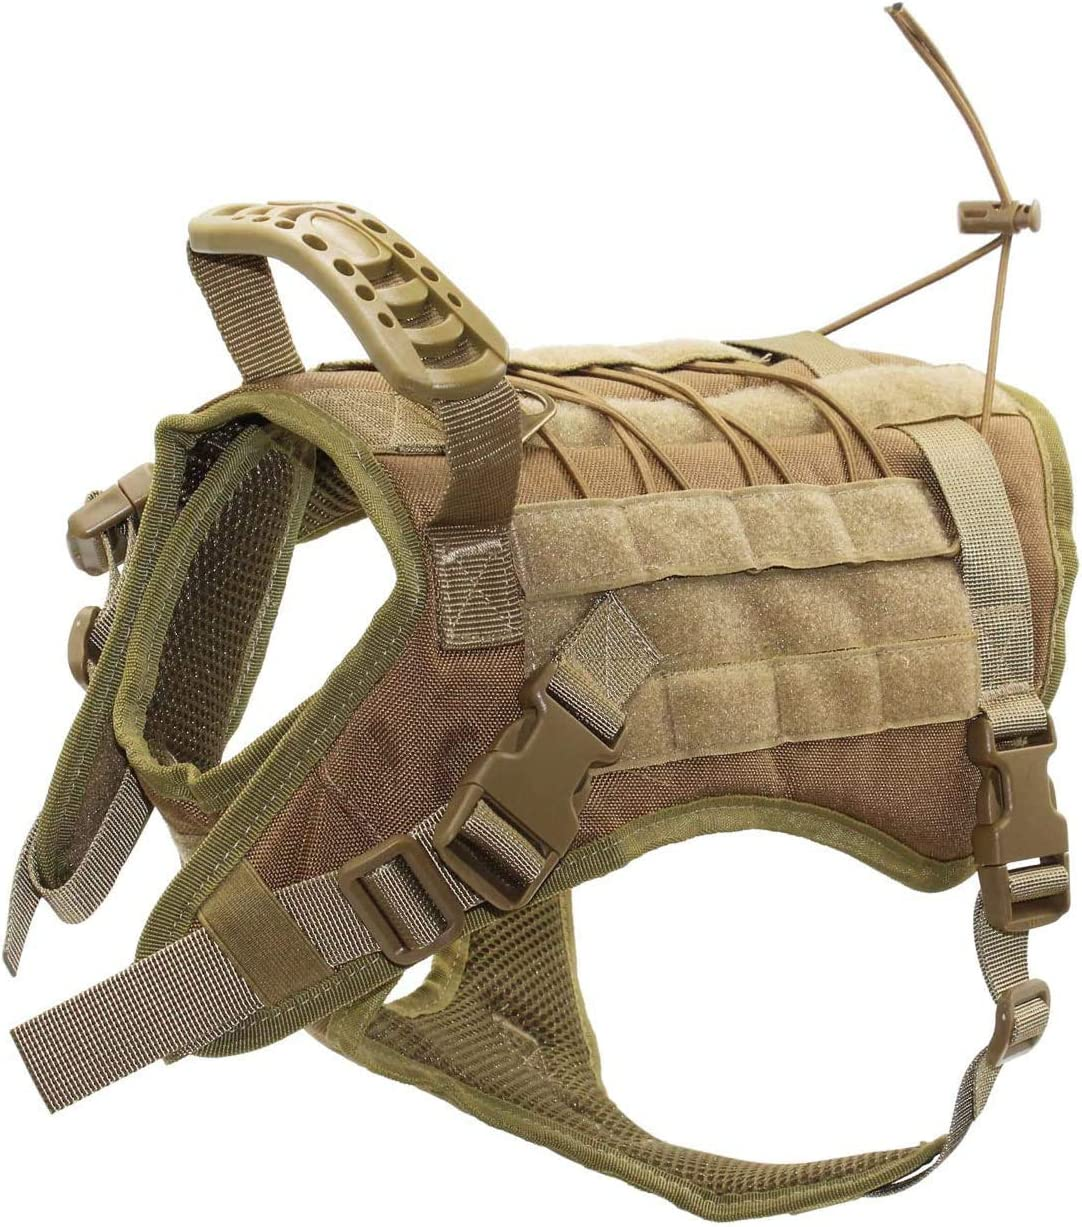 Image of the EJG Tactical Dog Harness Vest with Collapsible Bowl Spoon Patch, Handle for Walking, Molle System & DIY Velcro Area.